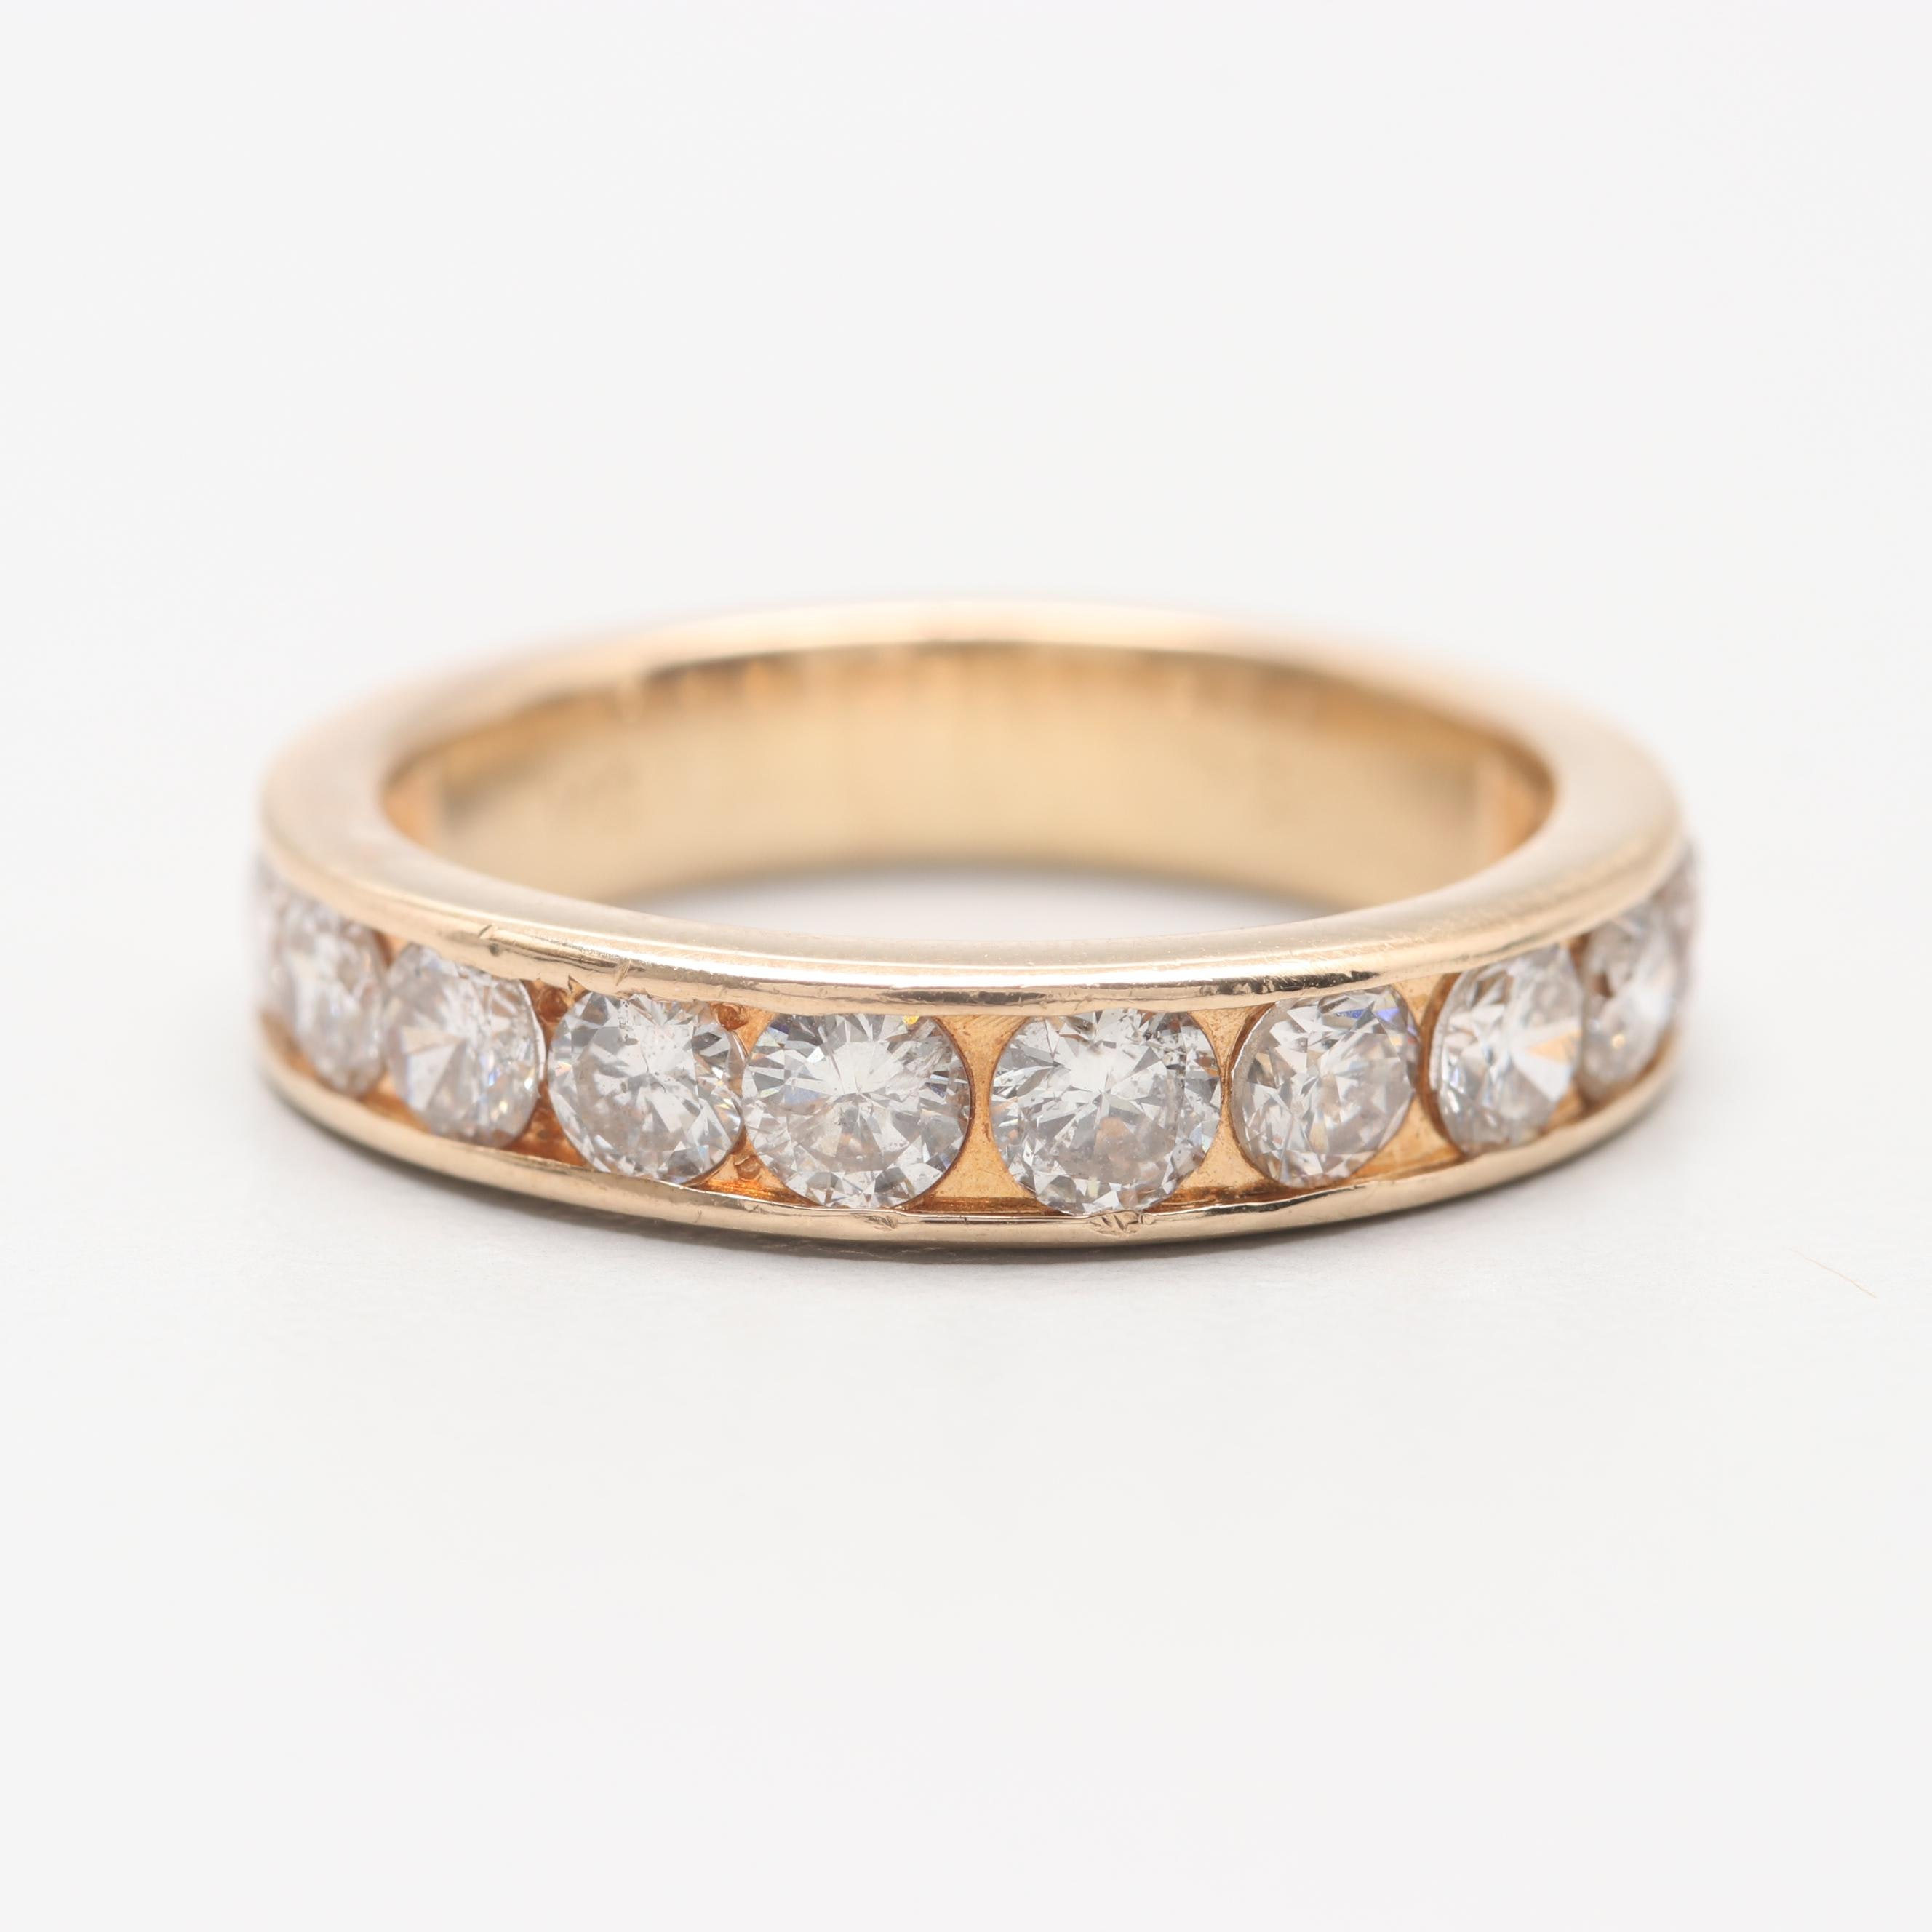 14K Yellow Gold 1.46 CTW Diamond Ring